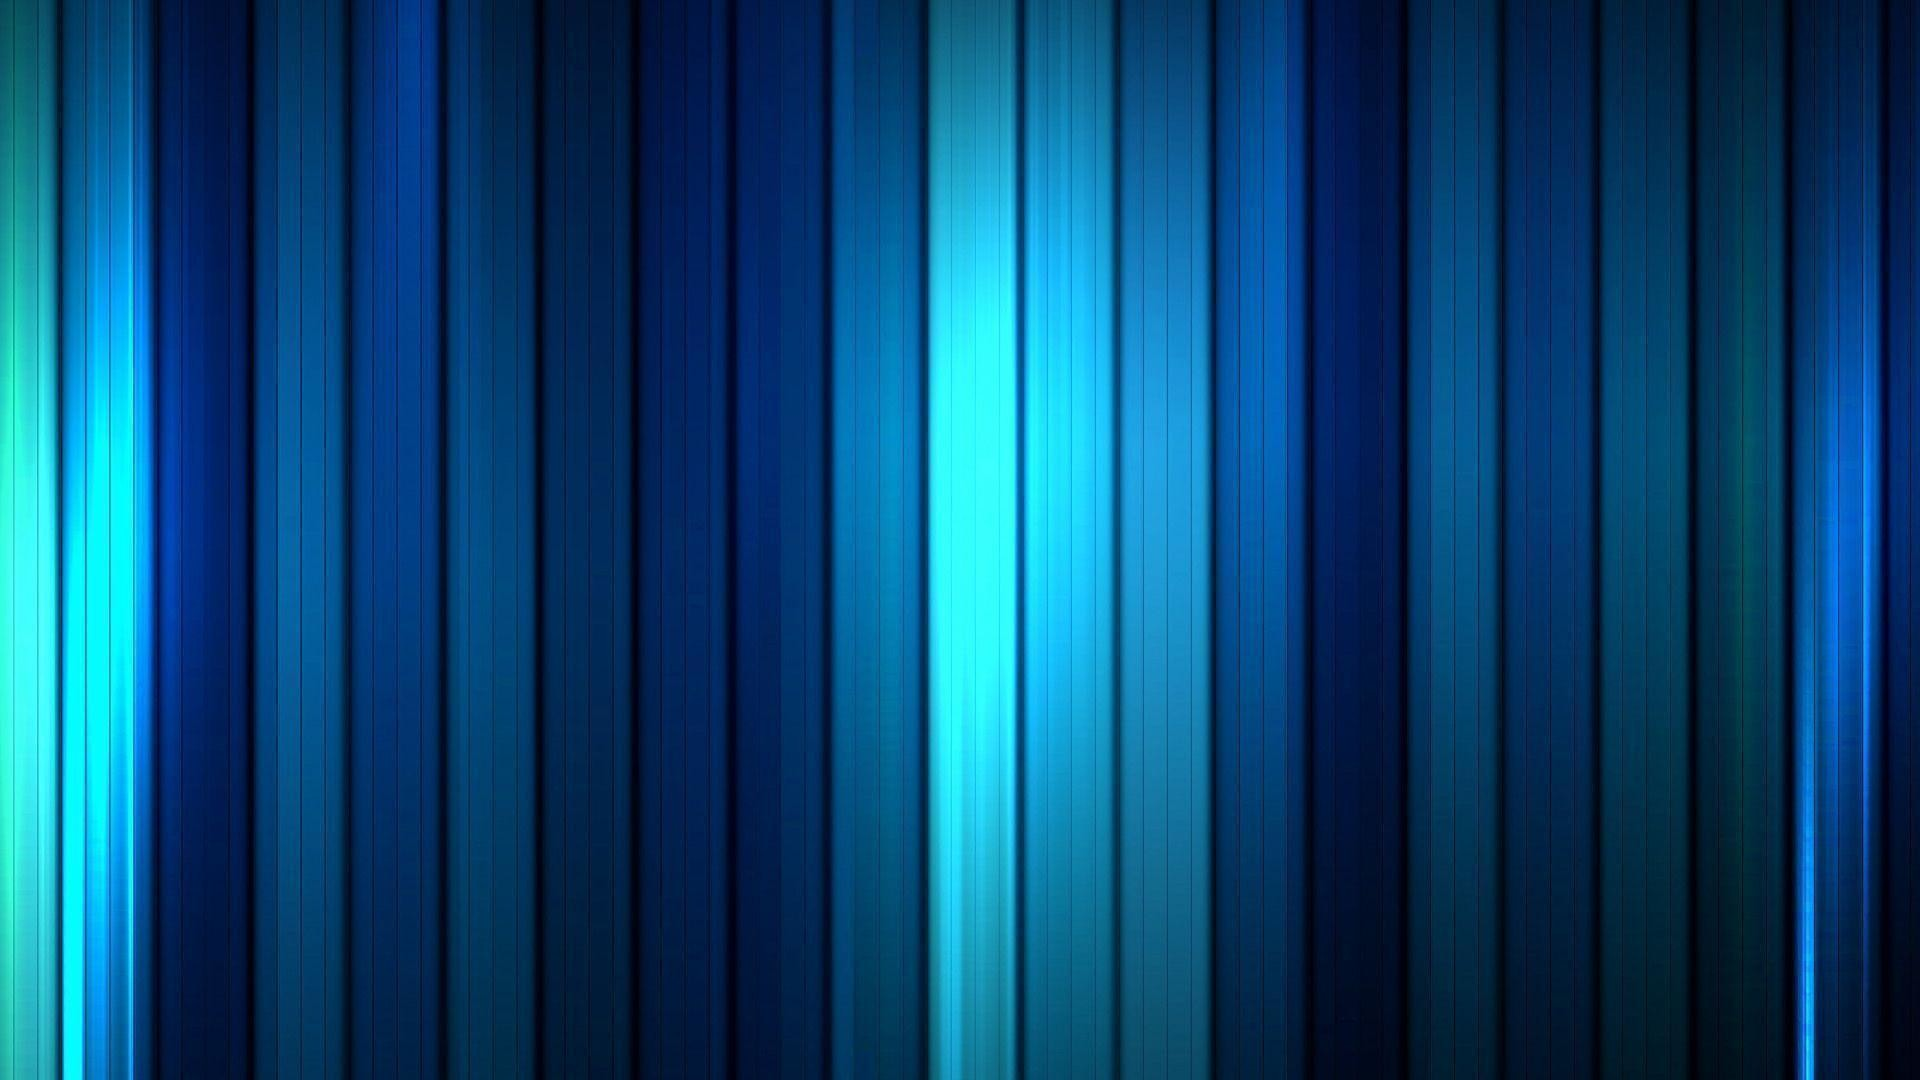 1920x1080 Abstract wallpaper designs pixel modern motionstripes large .